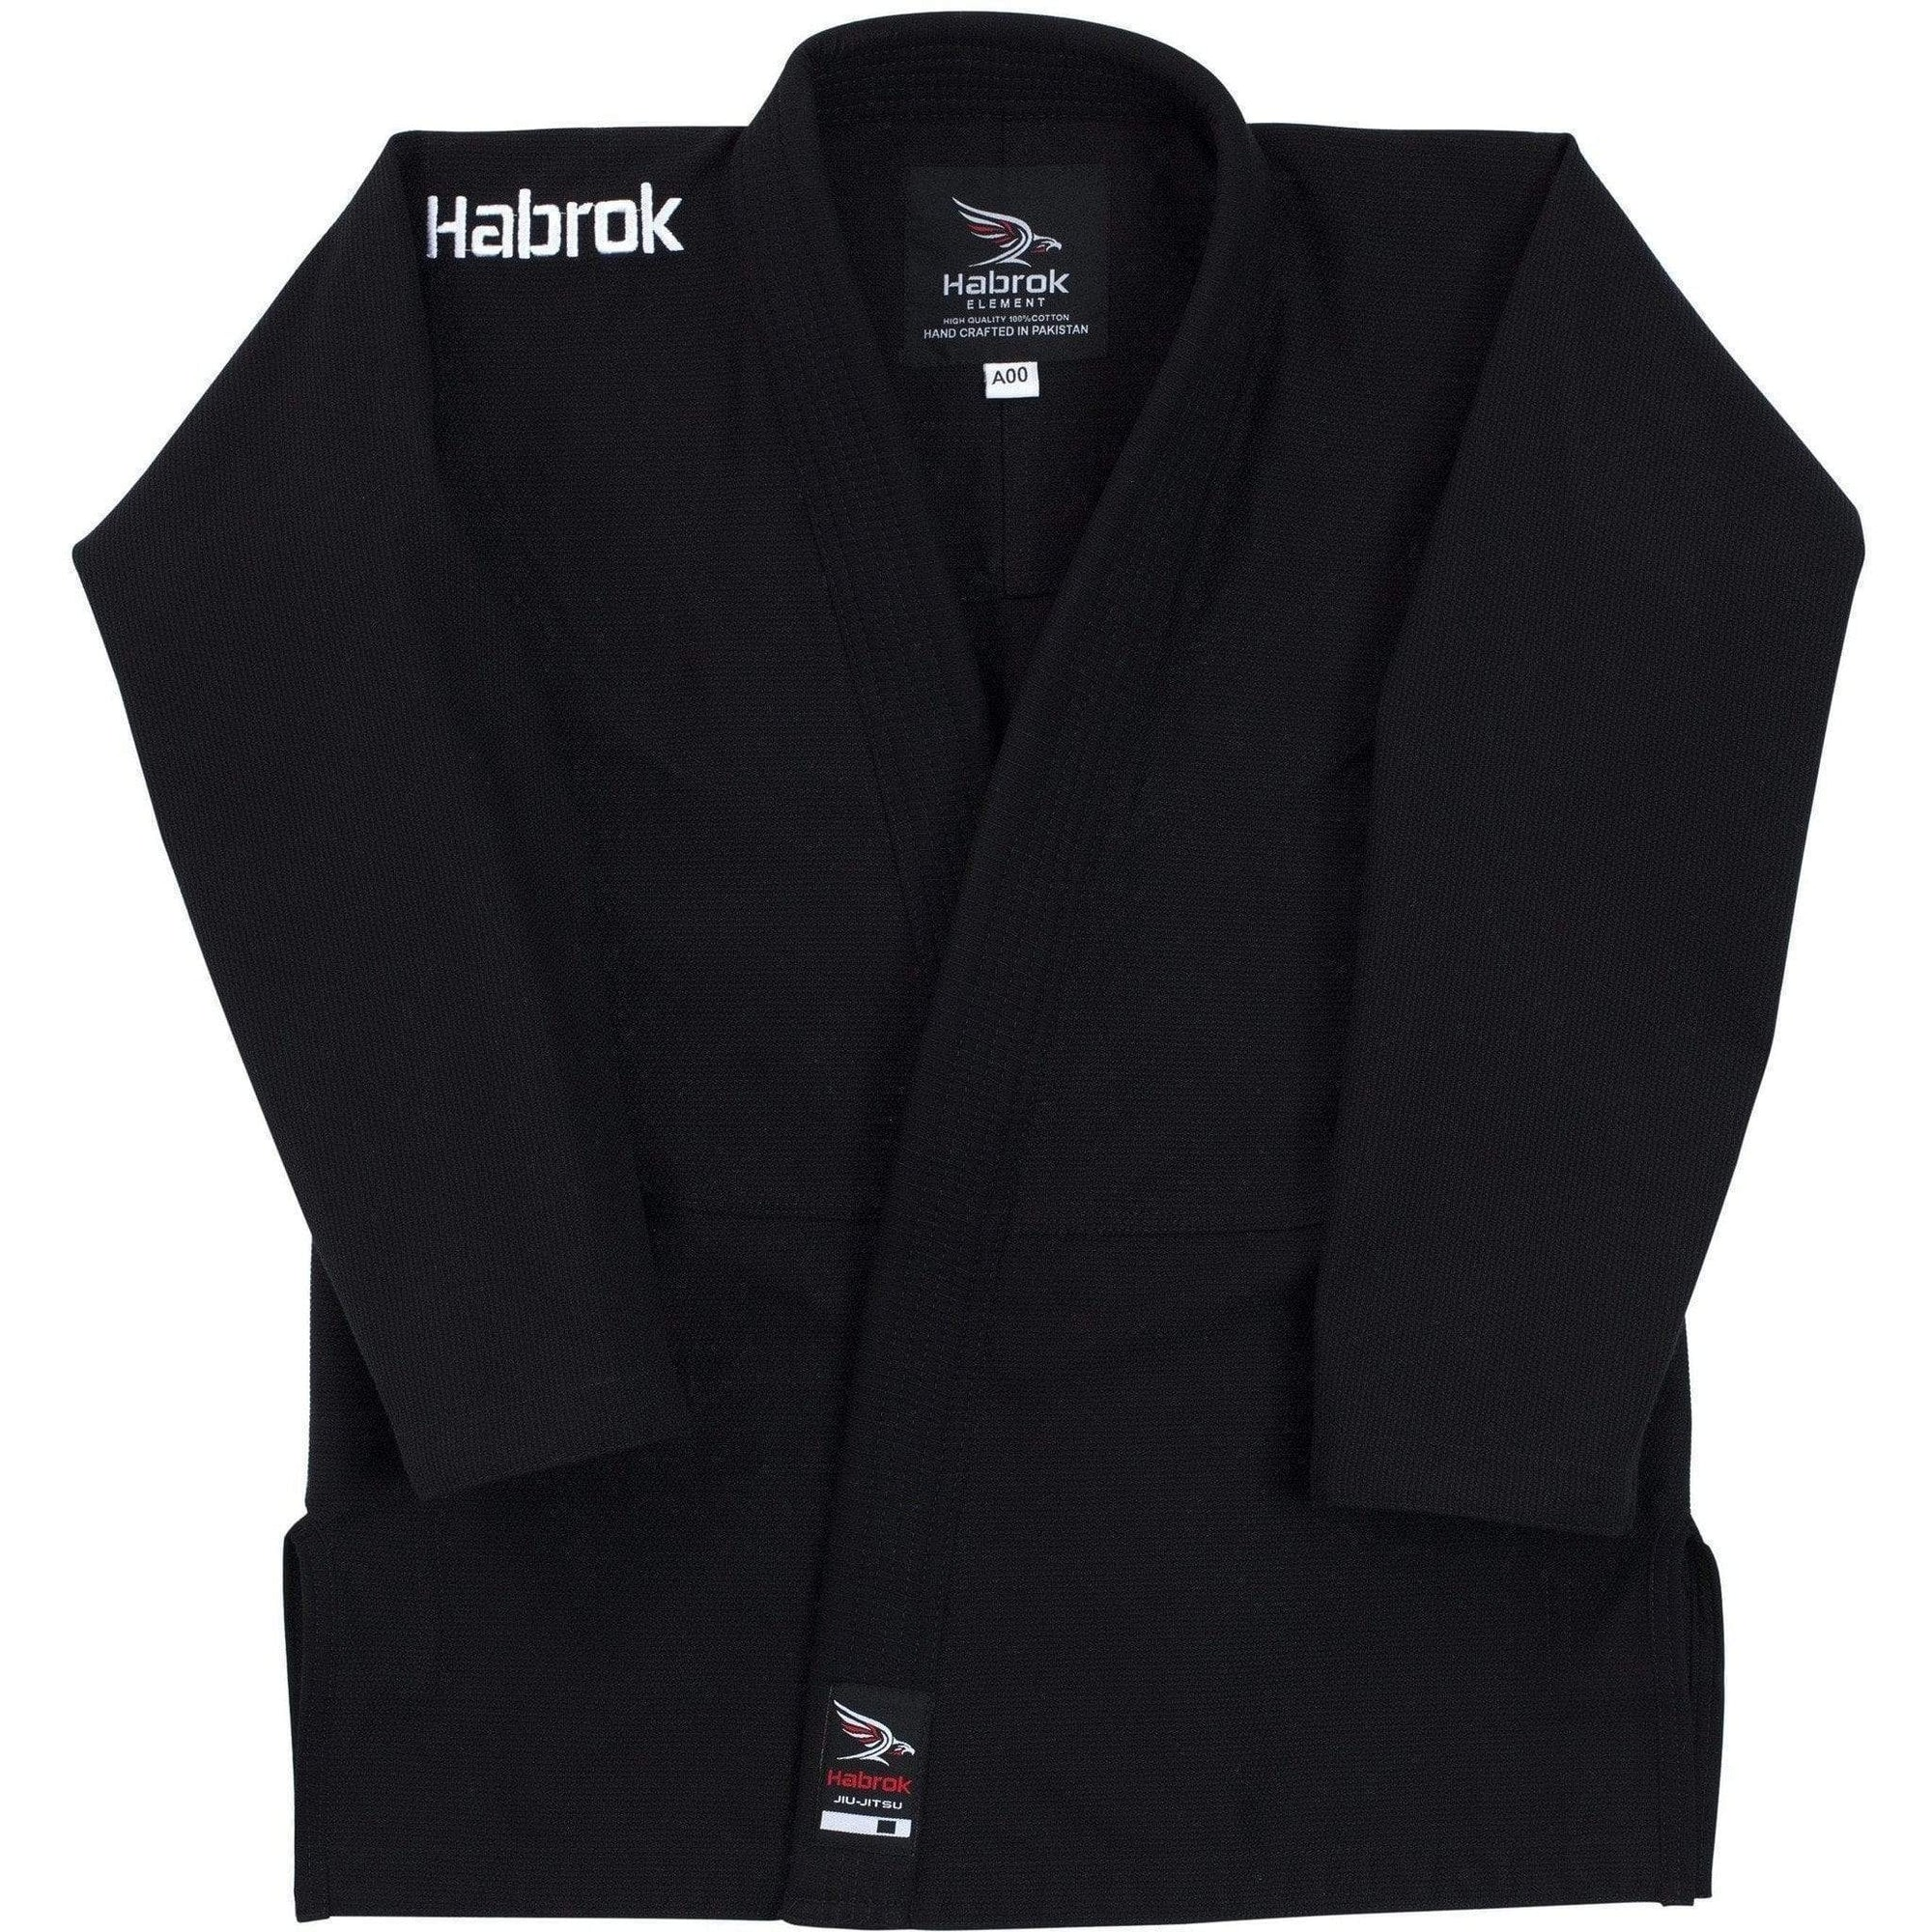 Habrok Jiu Jitsu Gi K000 / BLACK Element | Youth | Ultra Light Weight Gi 680334796543